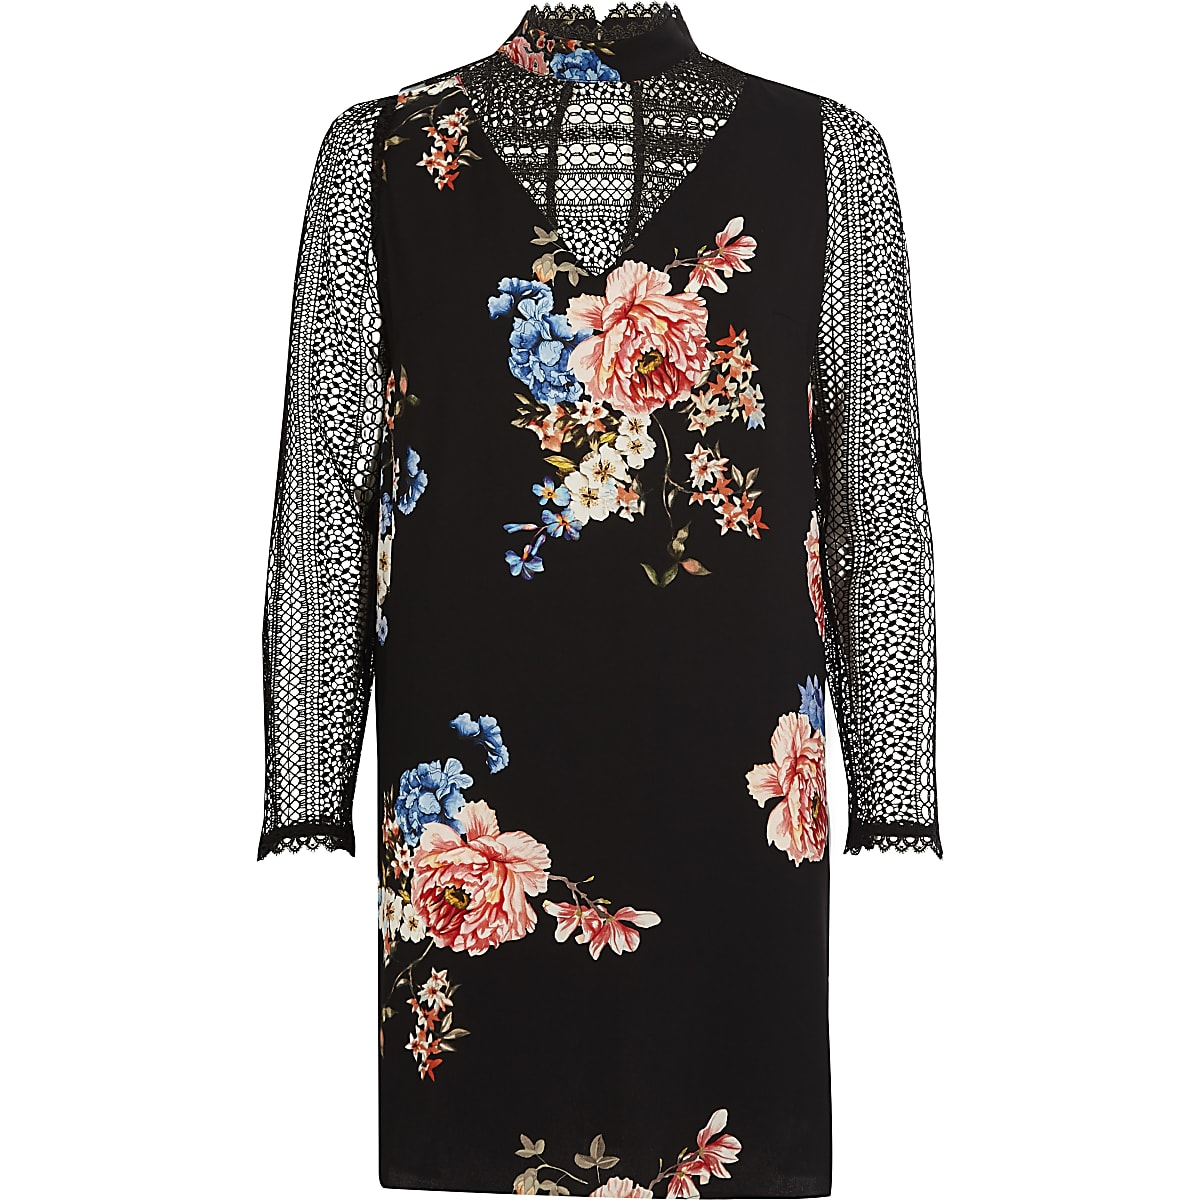 Black floral print lace insert swing dress